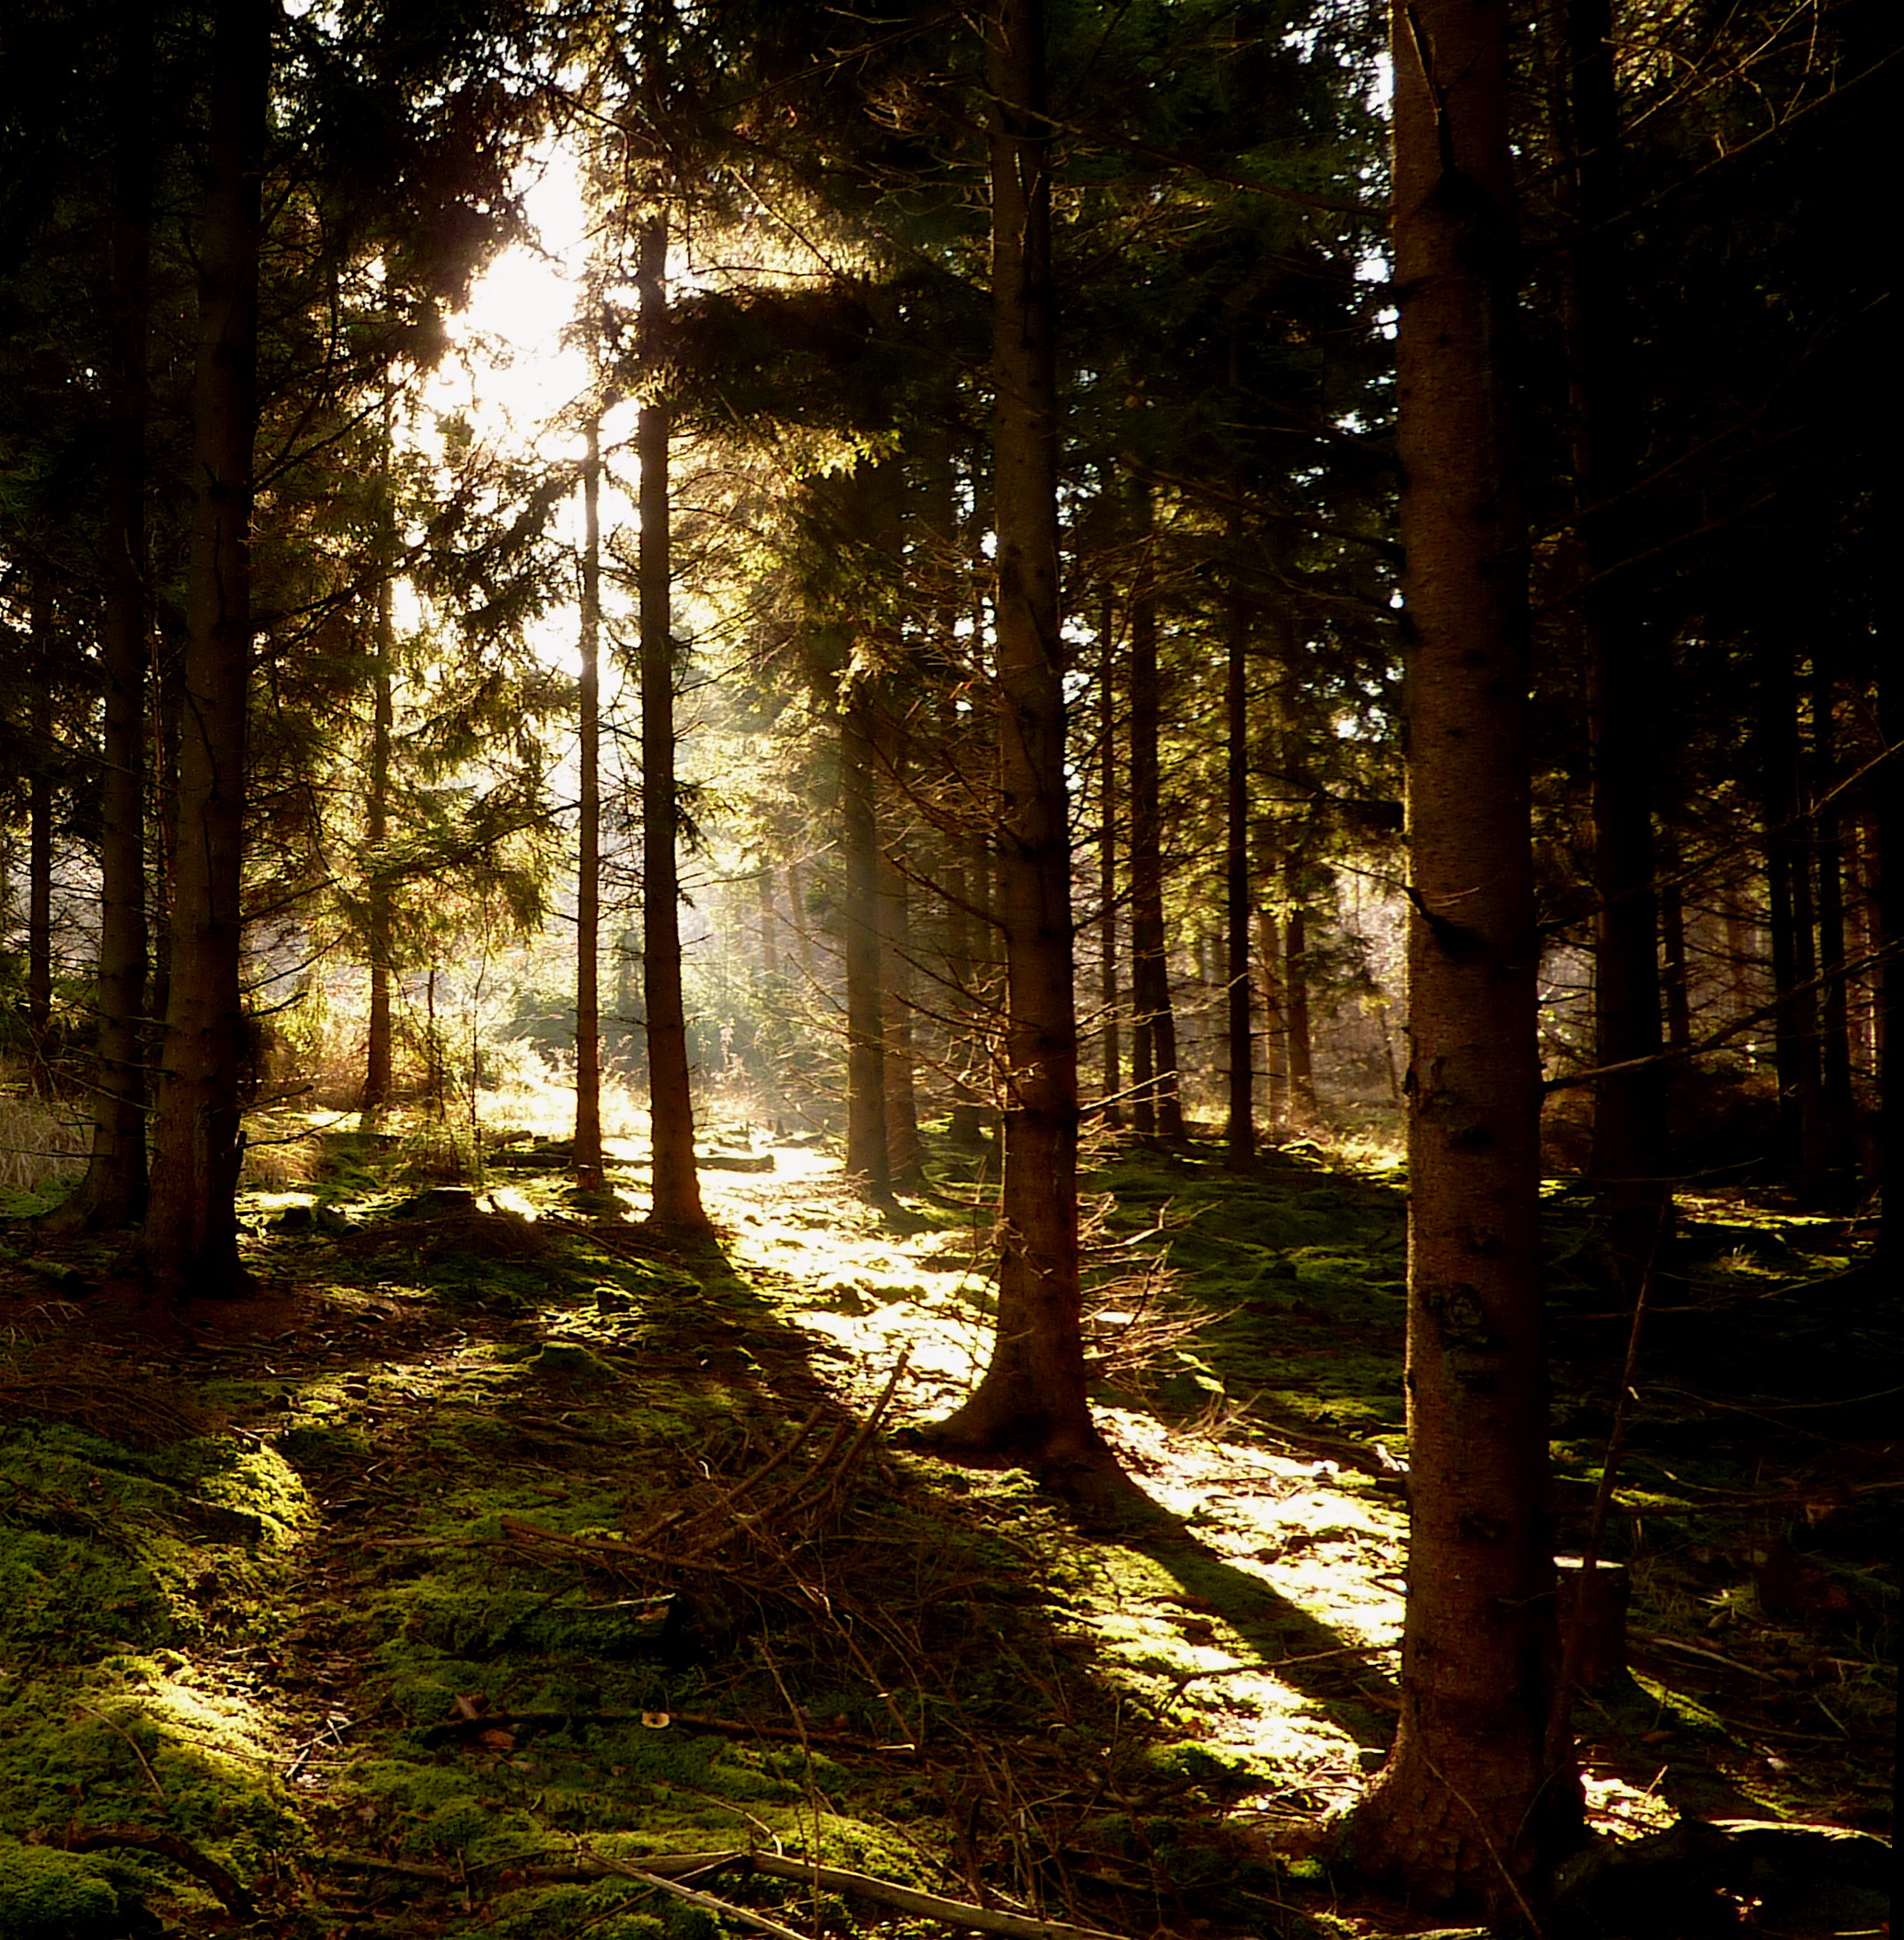 Magical light in the dark forest | Flickr - Photo Sharing!